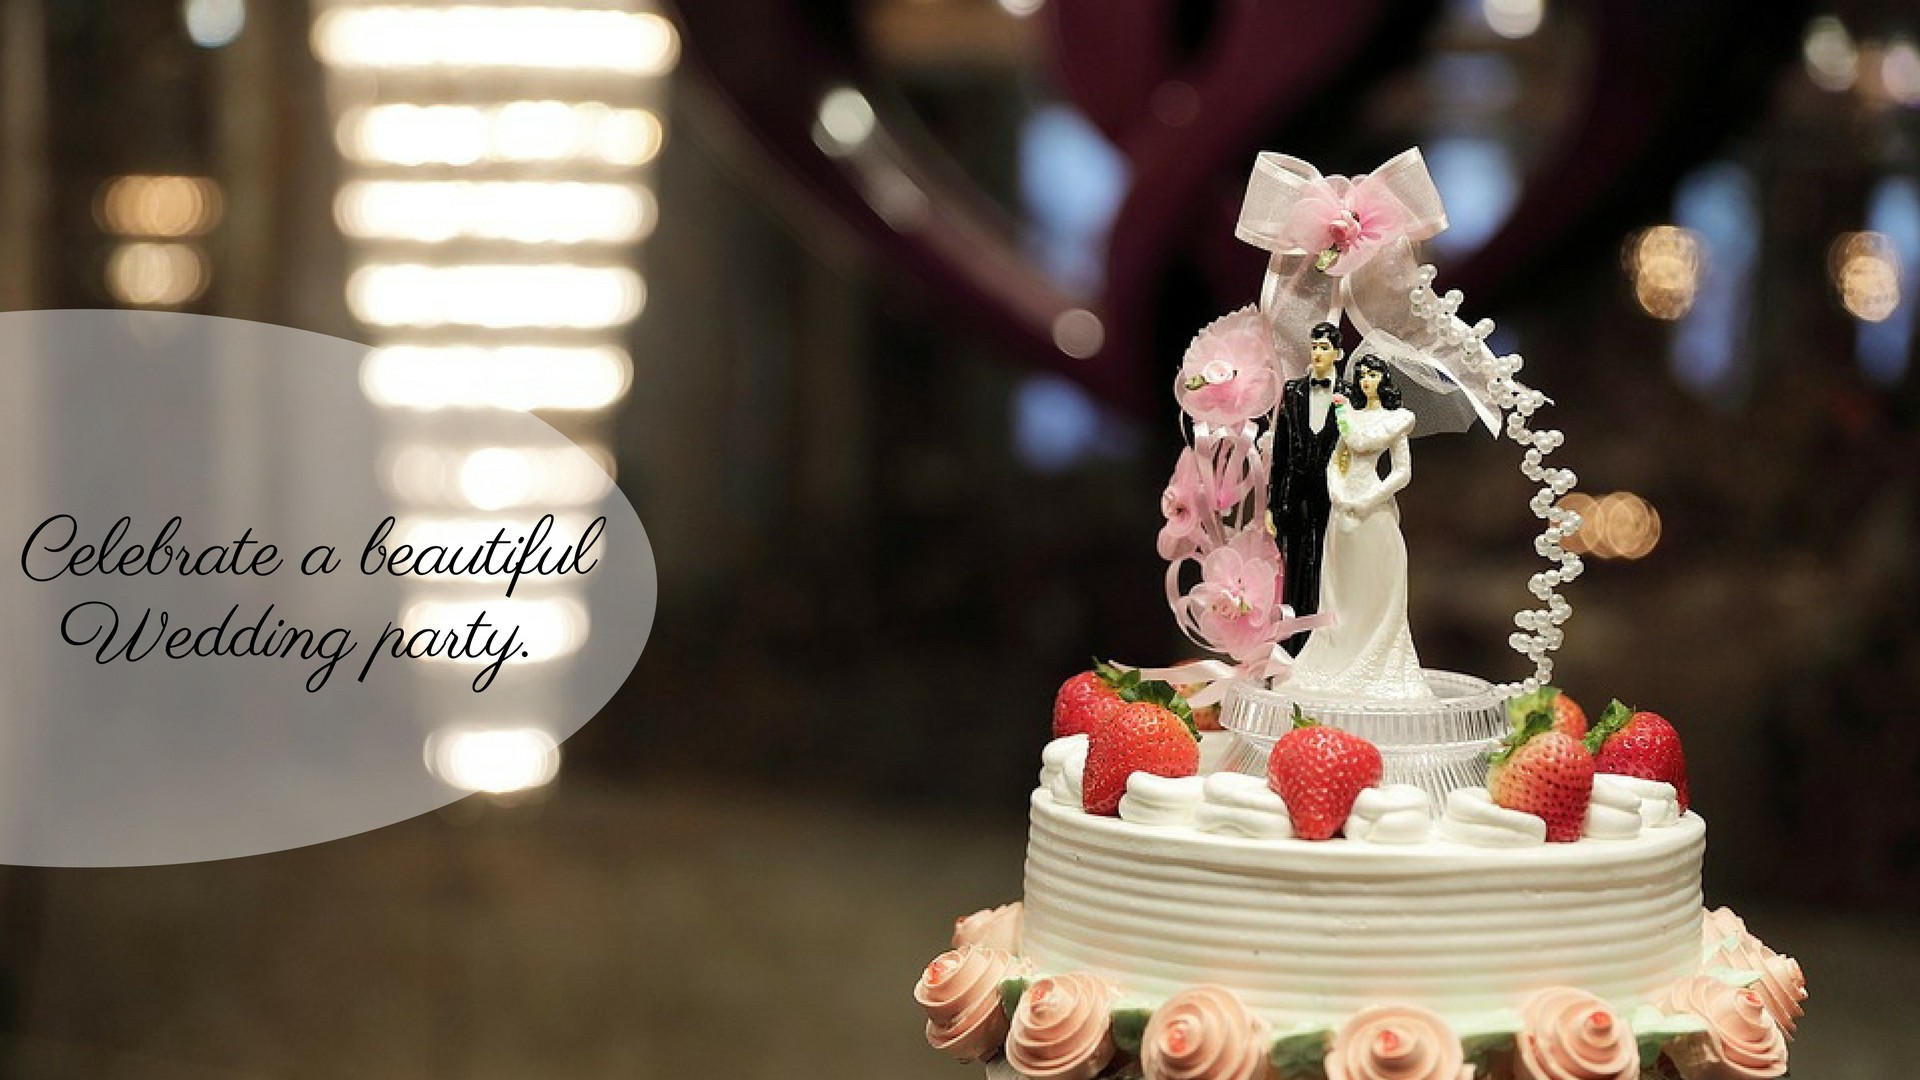 Cake is must for a celebration? - Myth or reality?